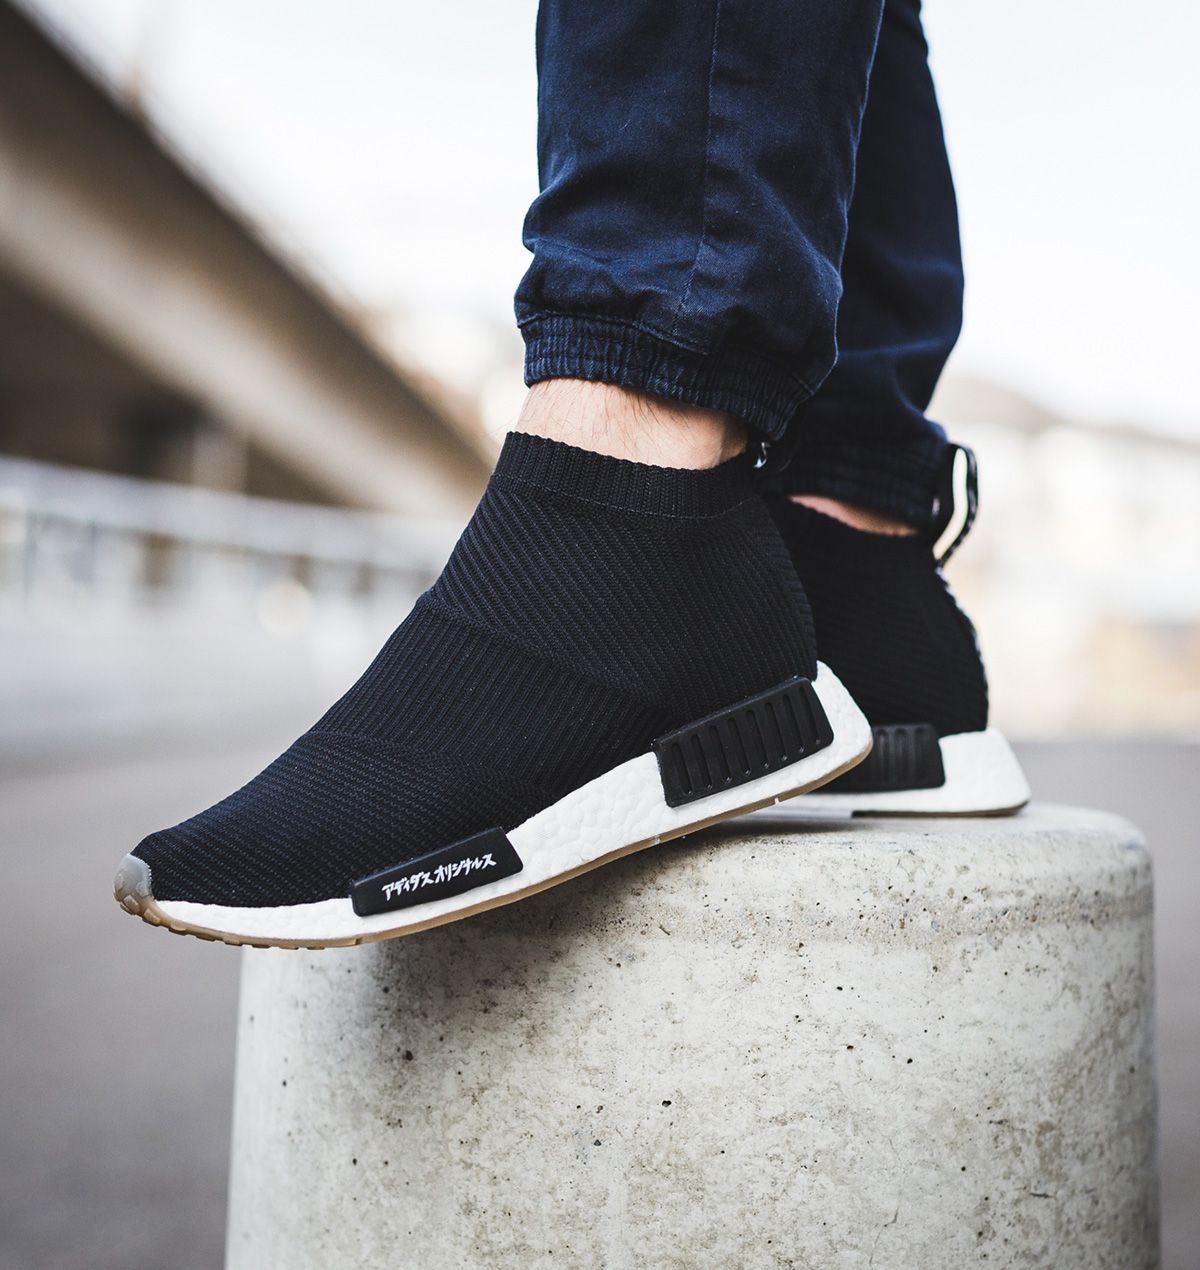 the latest 0e8d2 ea38b On-Foot: MIKITYPE x United Arrows & Sons x adidas NMD CS1 ...